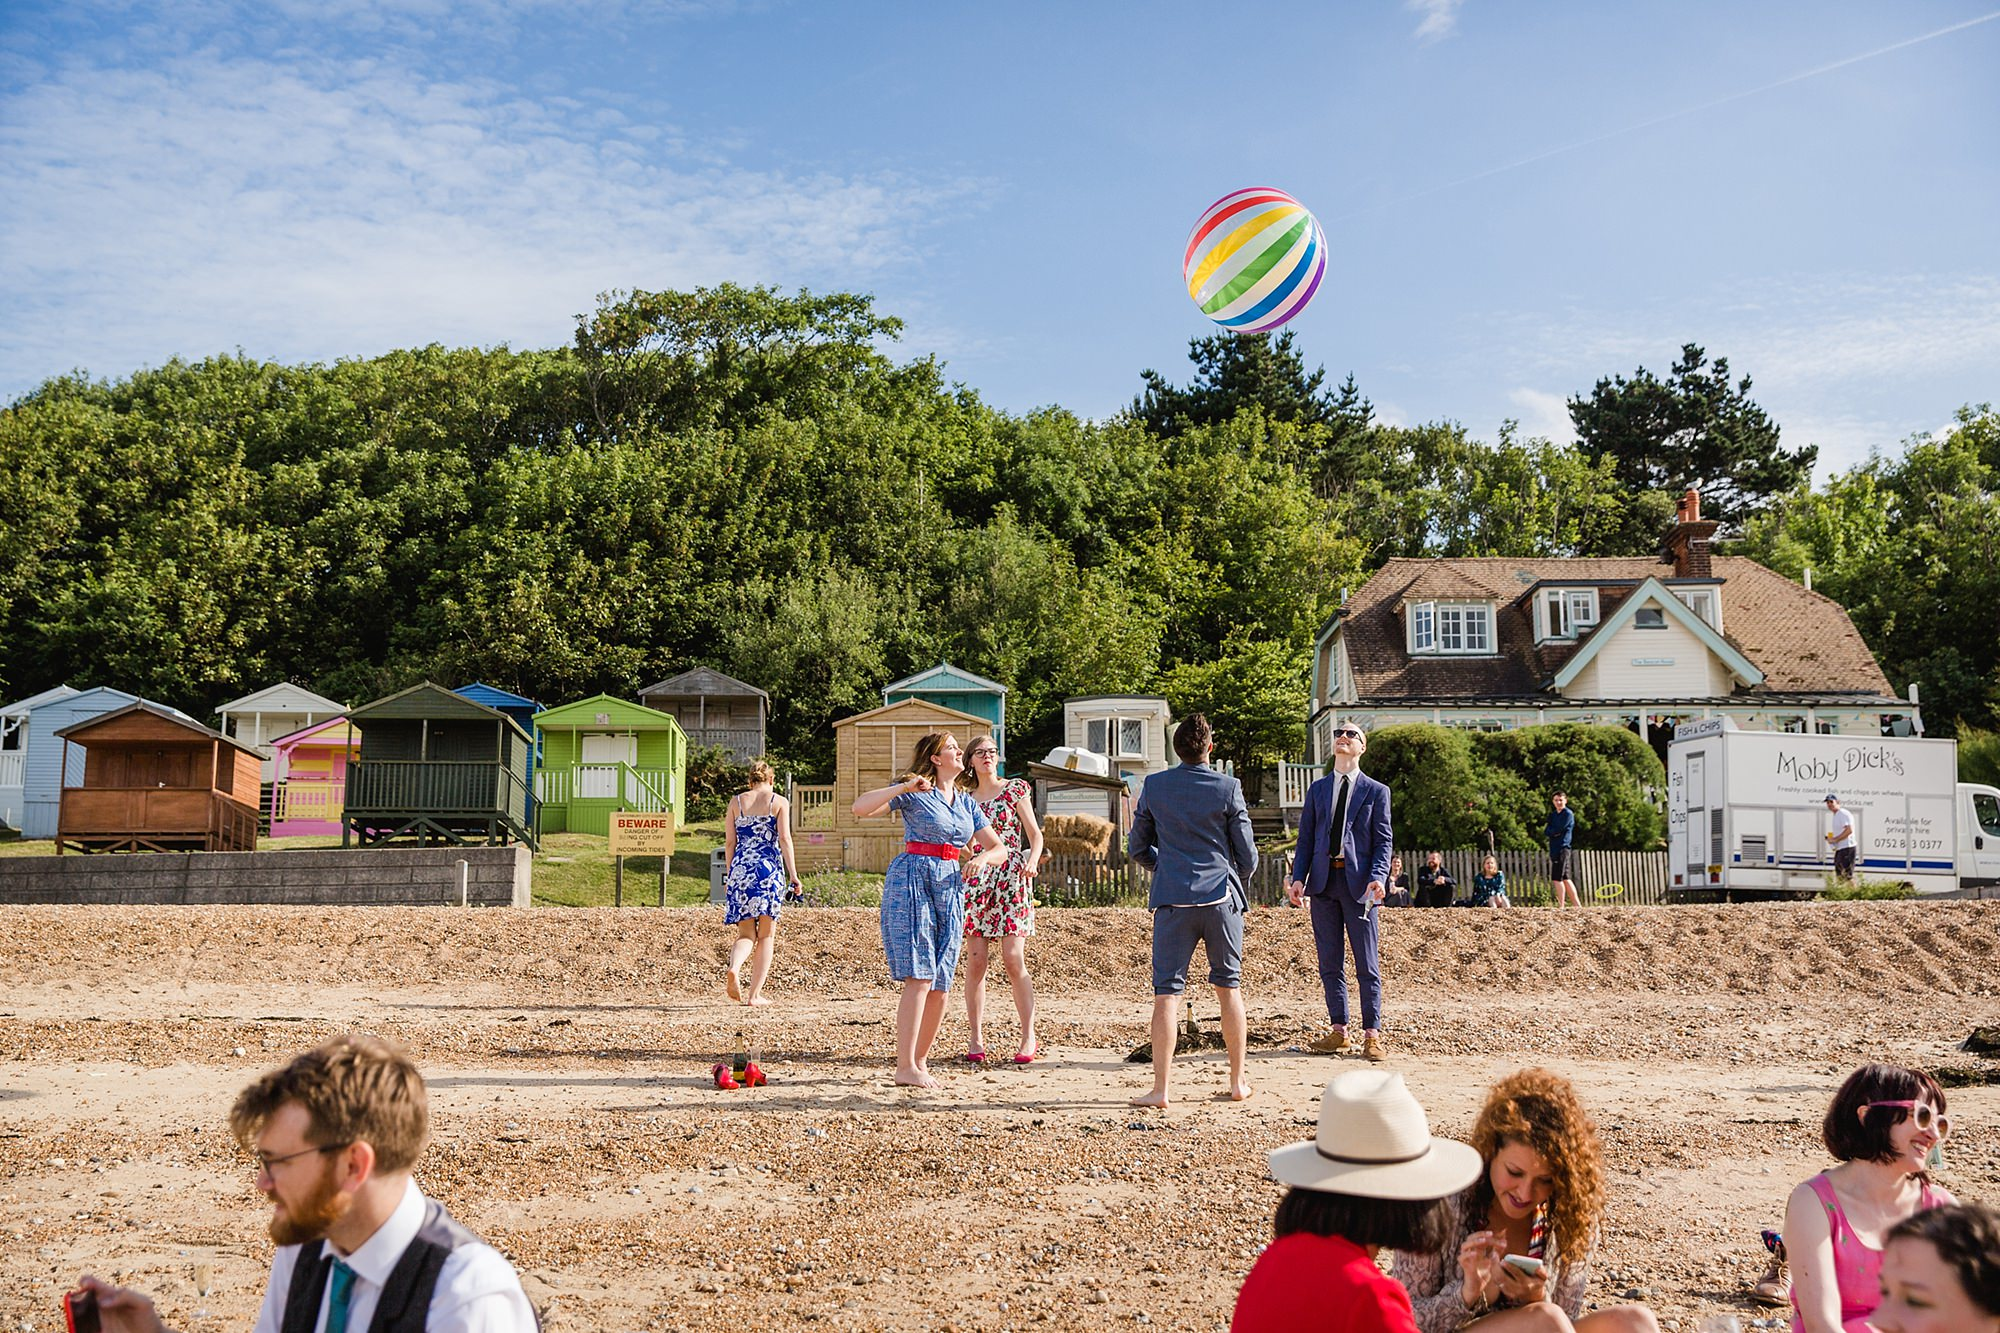 Beacon House wedding guests playing with beach ball